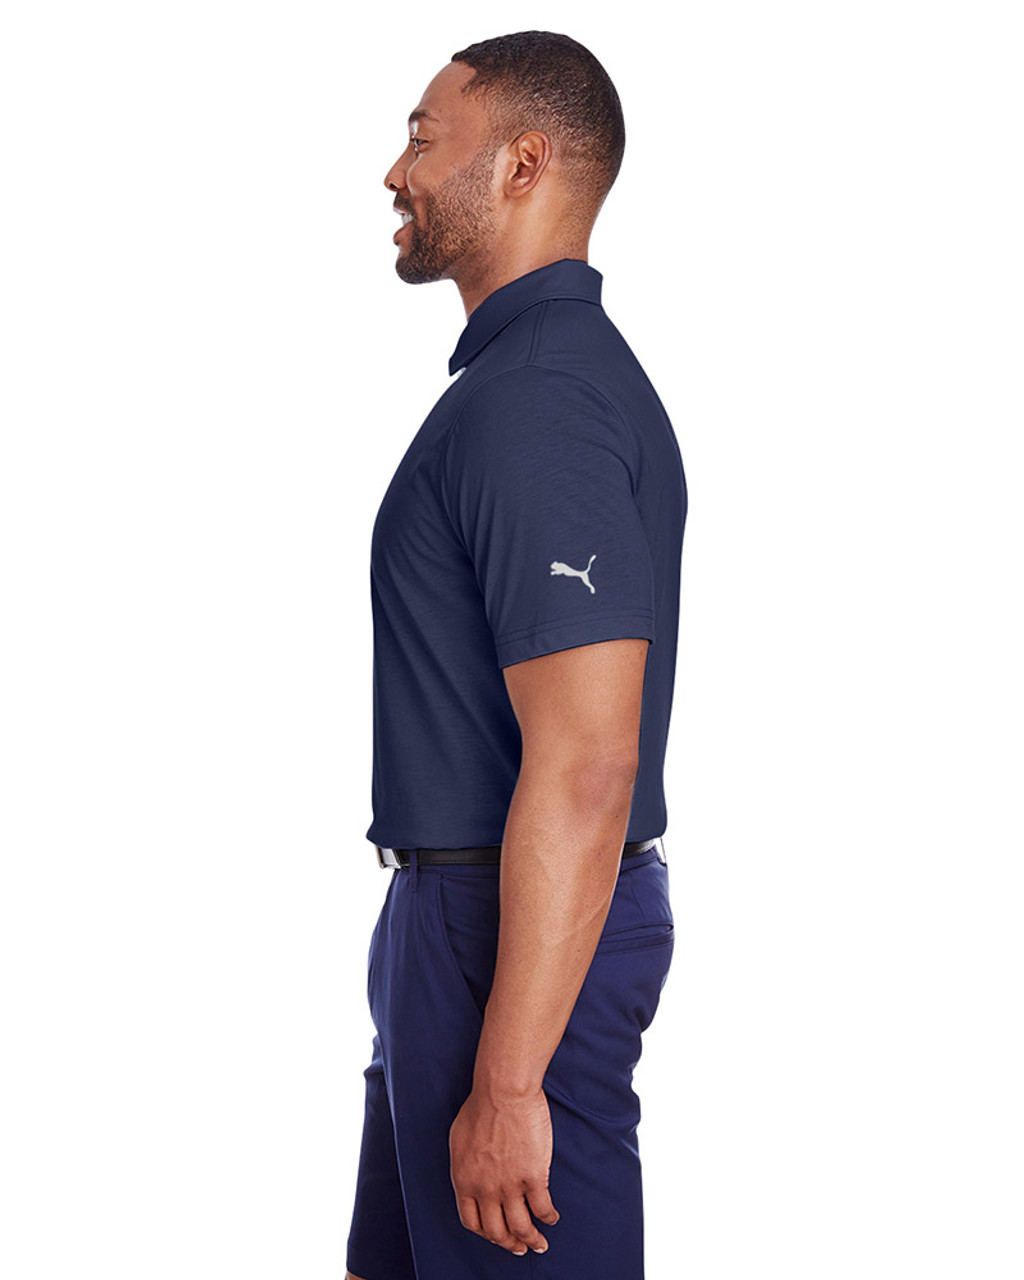 Peacoat - side, 596920 Puma Golf Men's Fusion Polo | Blankclothing.ca